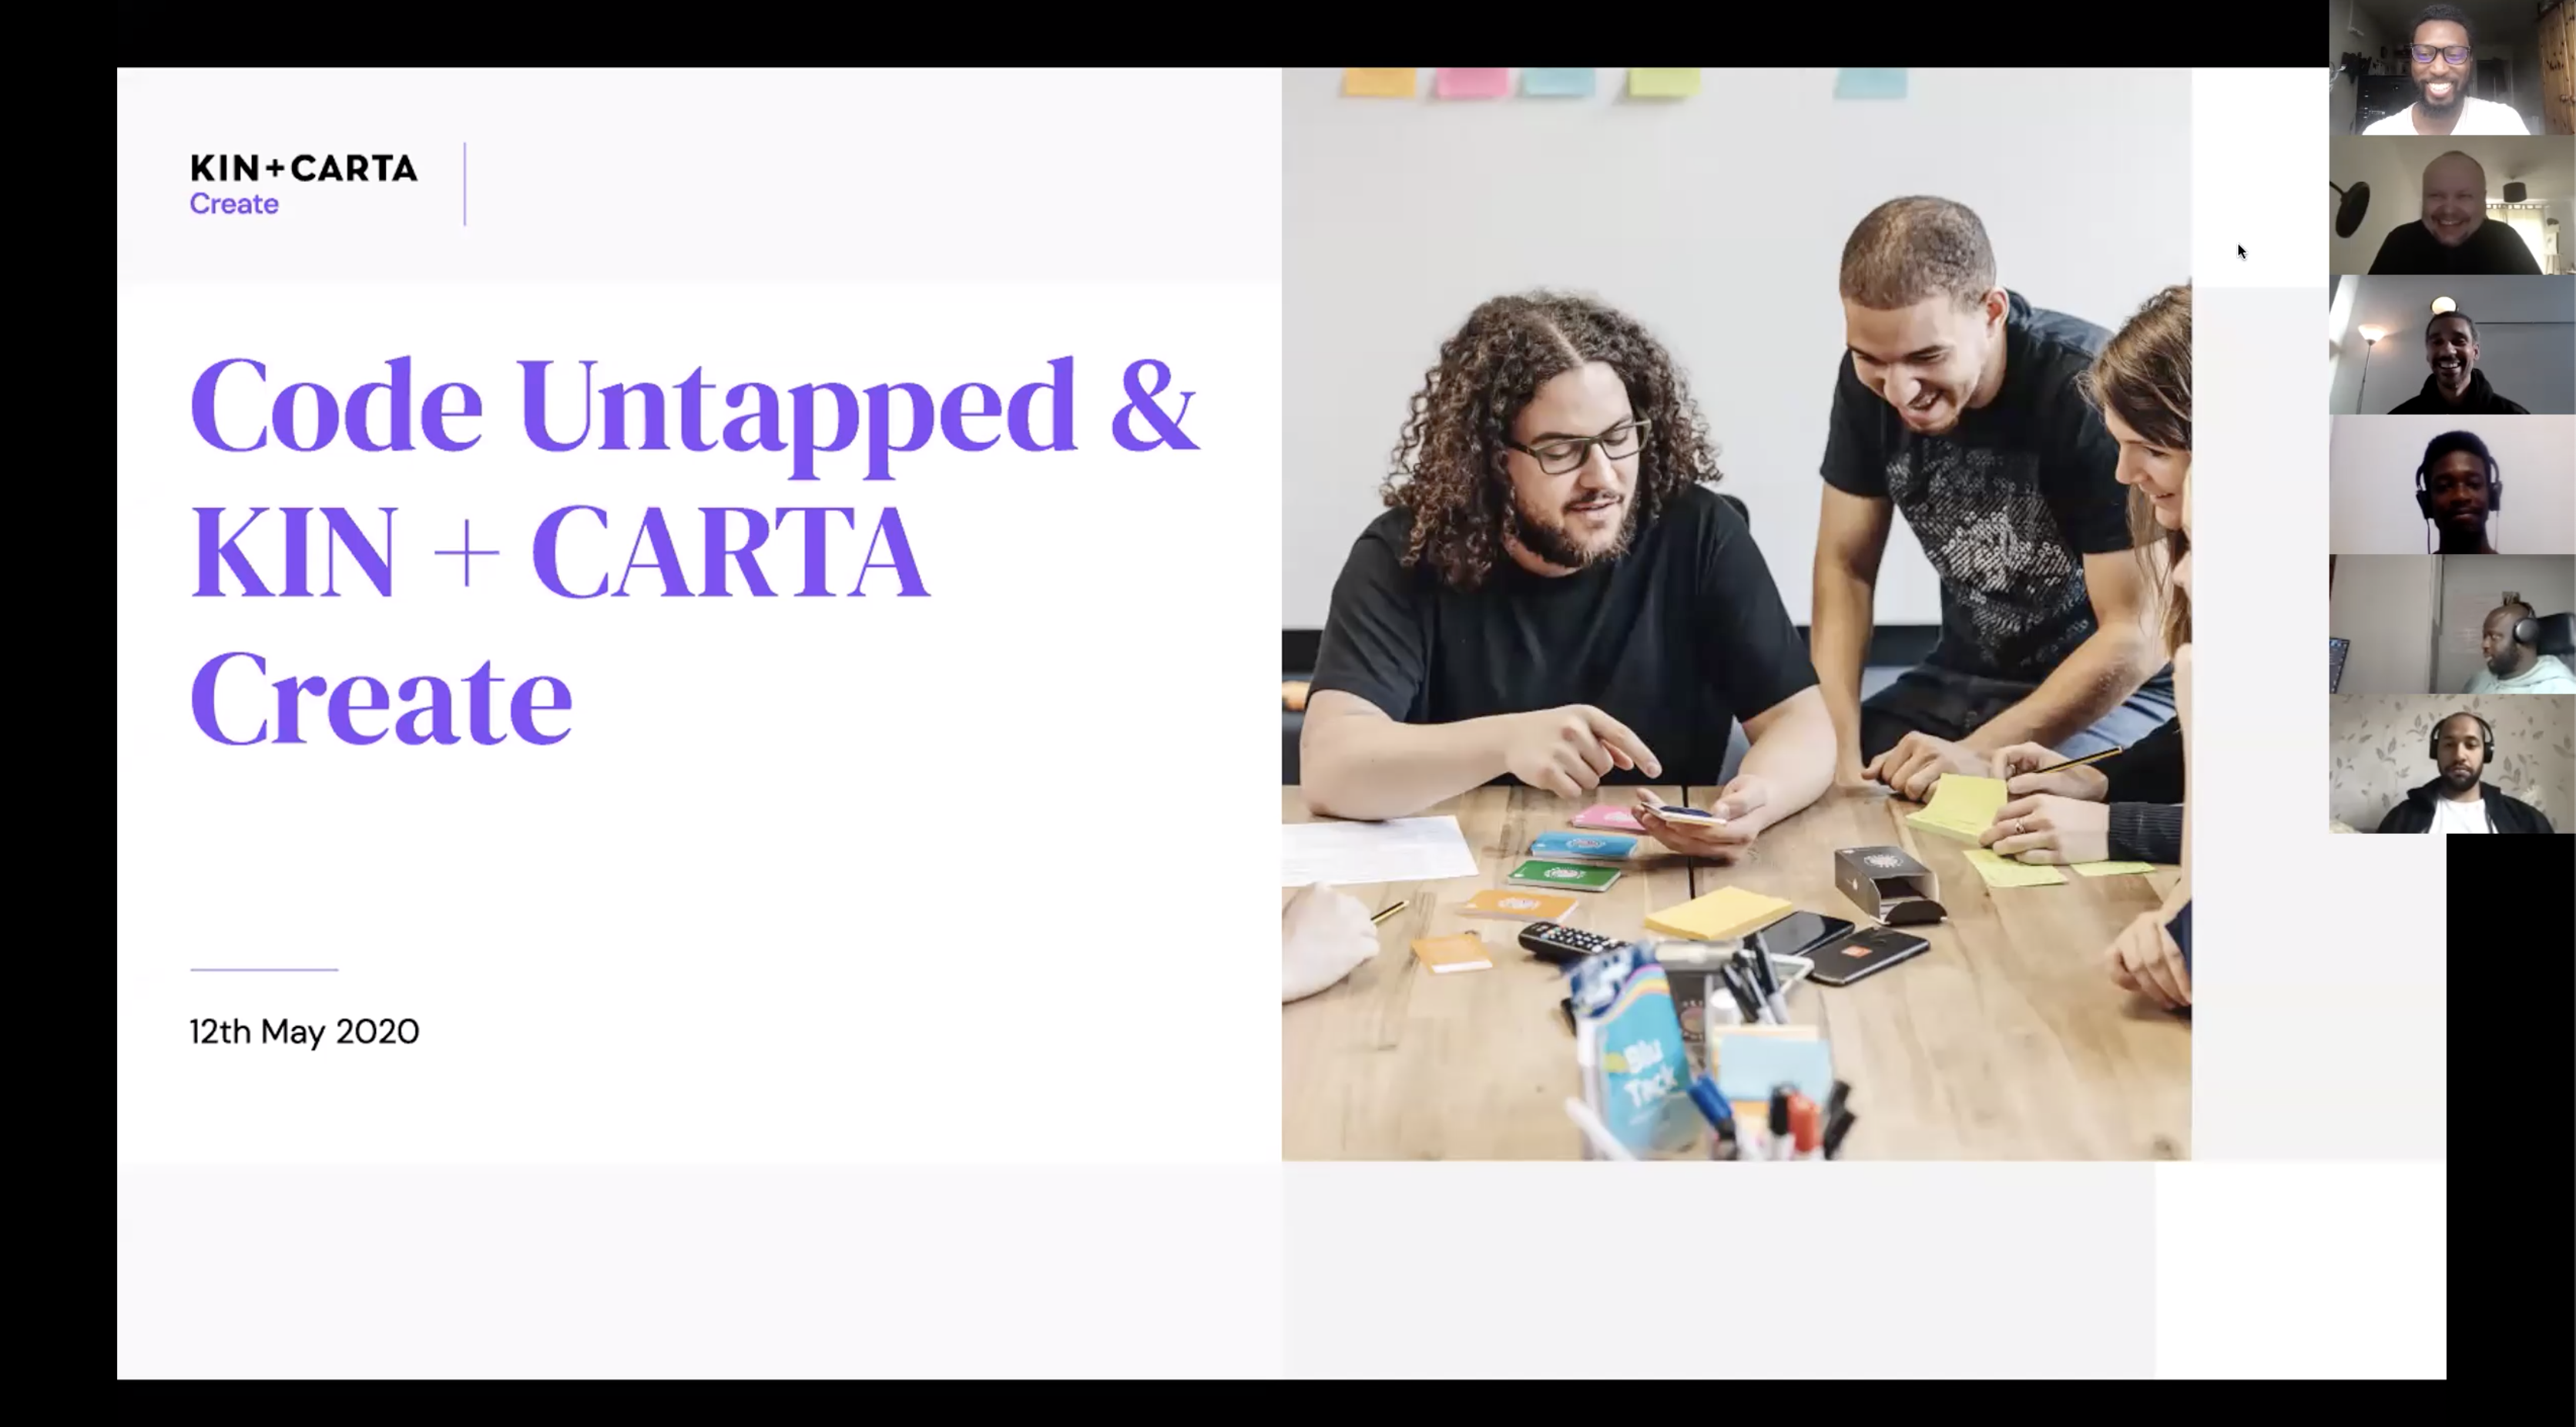 Kin + Carta Create Dart and Flutter Workshop Series with Code Untapped